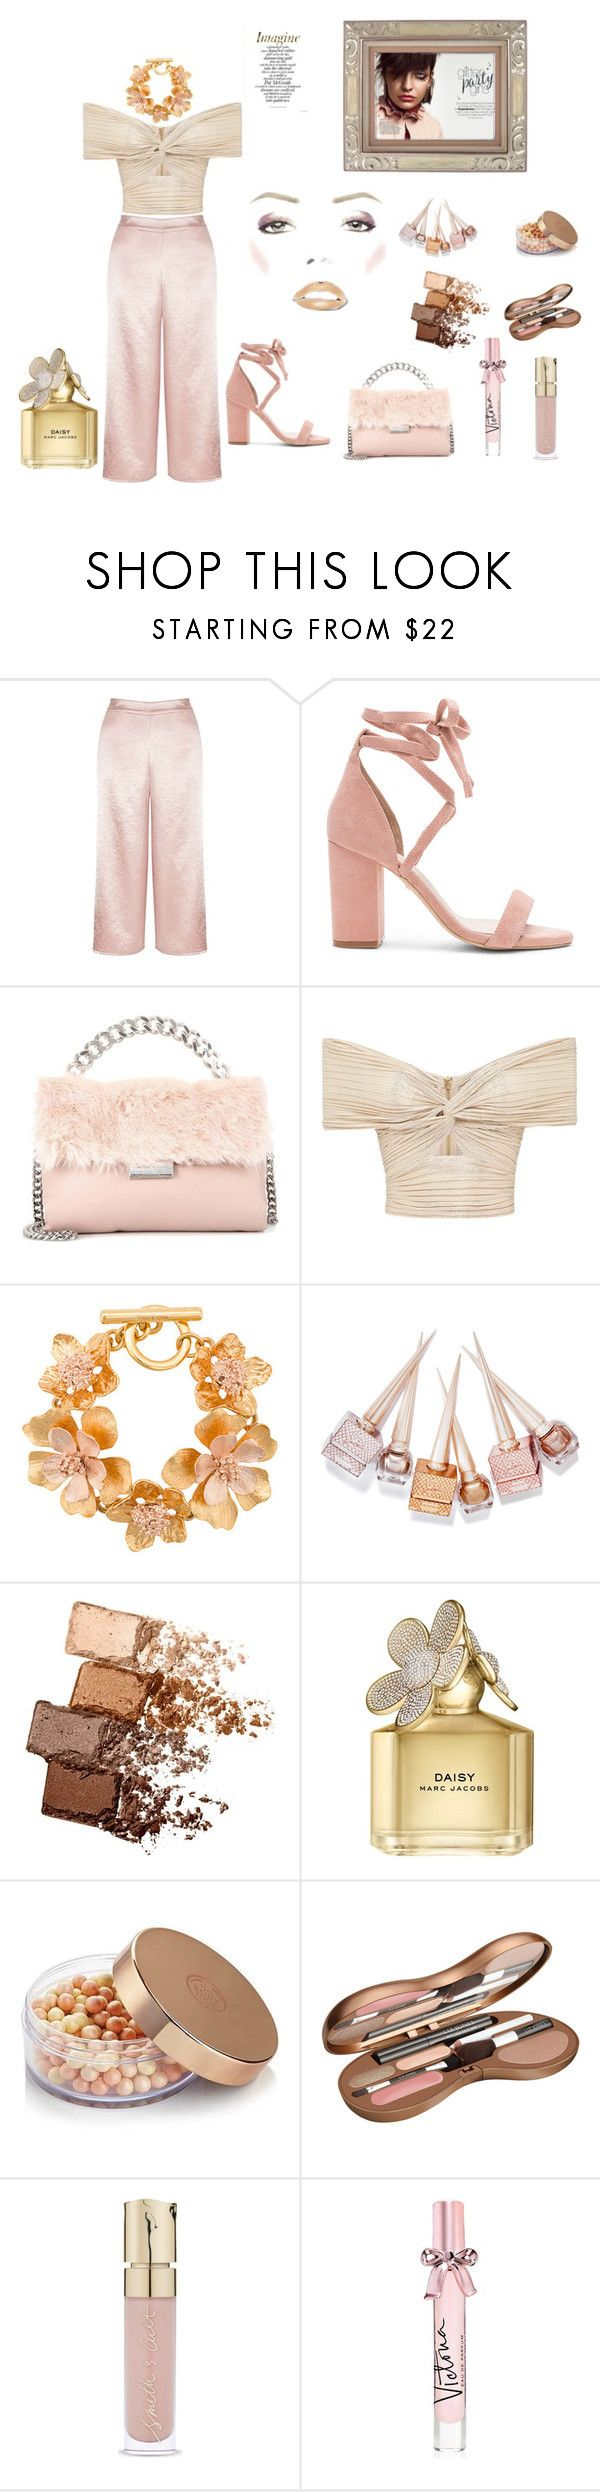 """""""JUST CALL ME SHIMMER"""" by destinystarheaven ❤ liked on Polyvore featuring Miss Selfridge, Raye, STELLA McCARTNEY, Oscar de la Renta, Christian Louboutin, Maybelline, Marc Jacobs, The Body Shop, Smith & Cult and Victoria's Secret"""